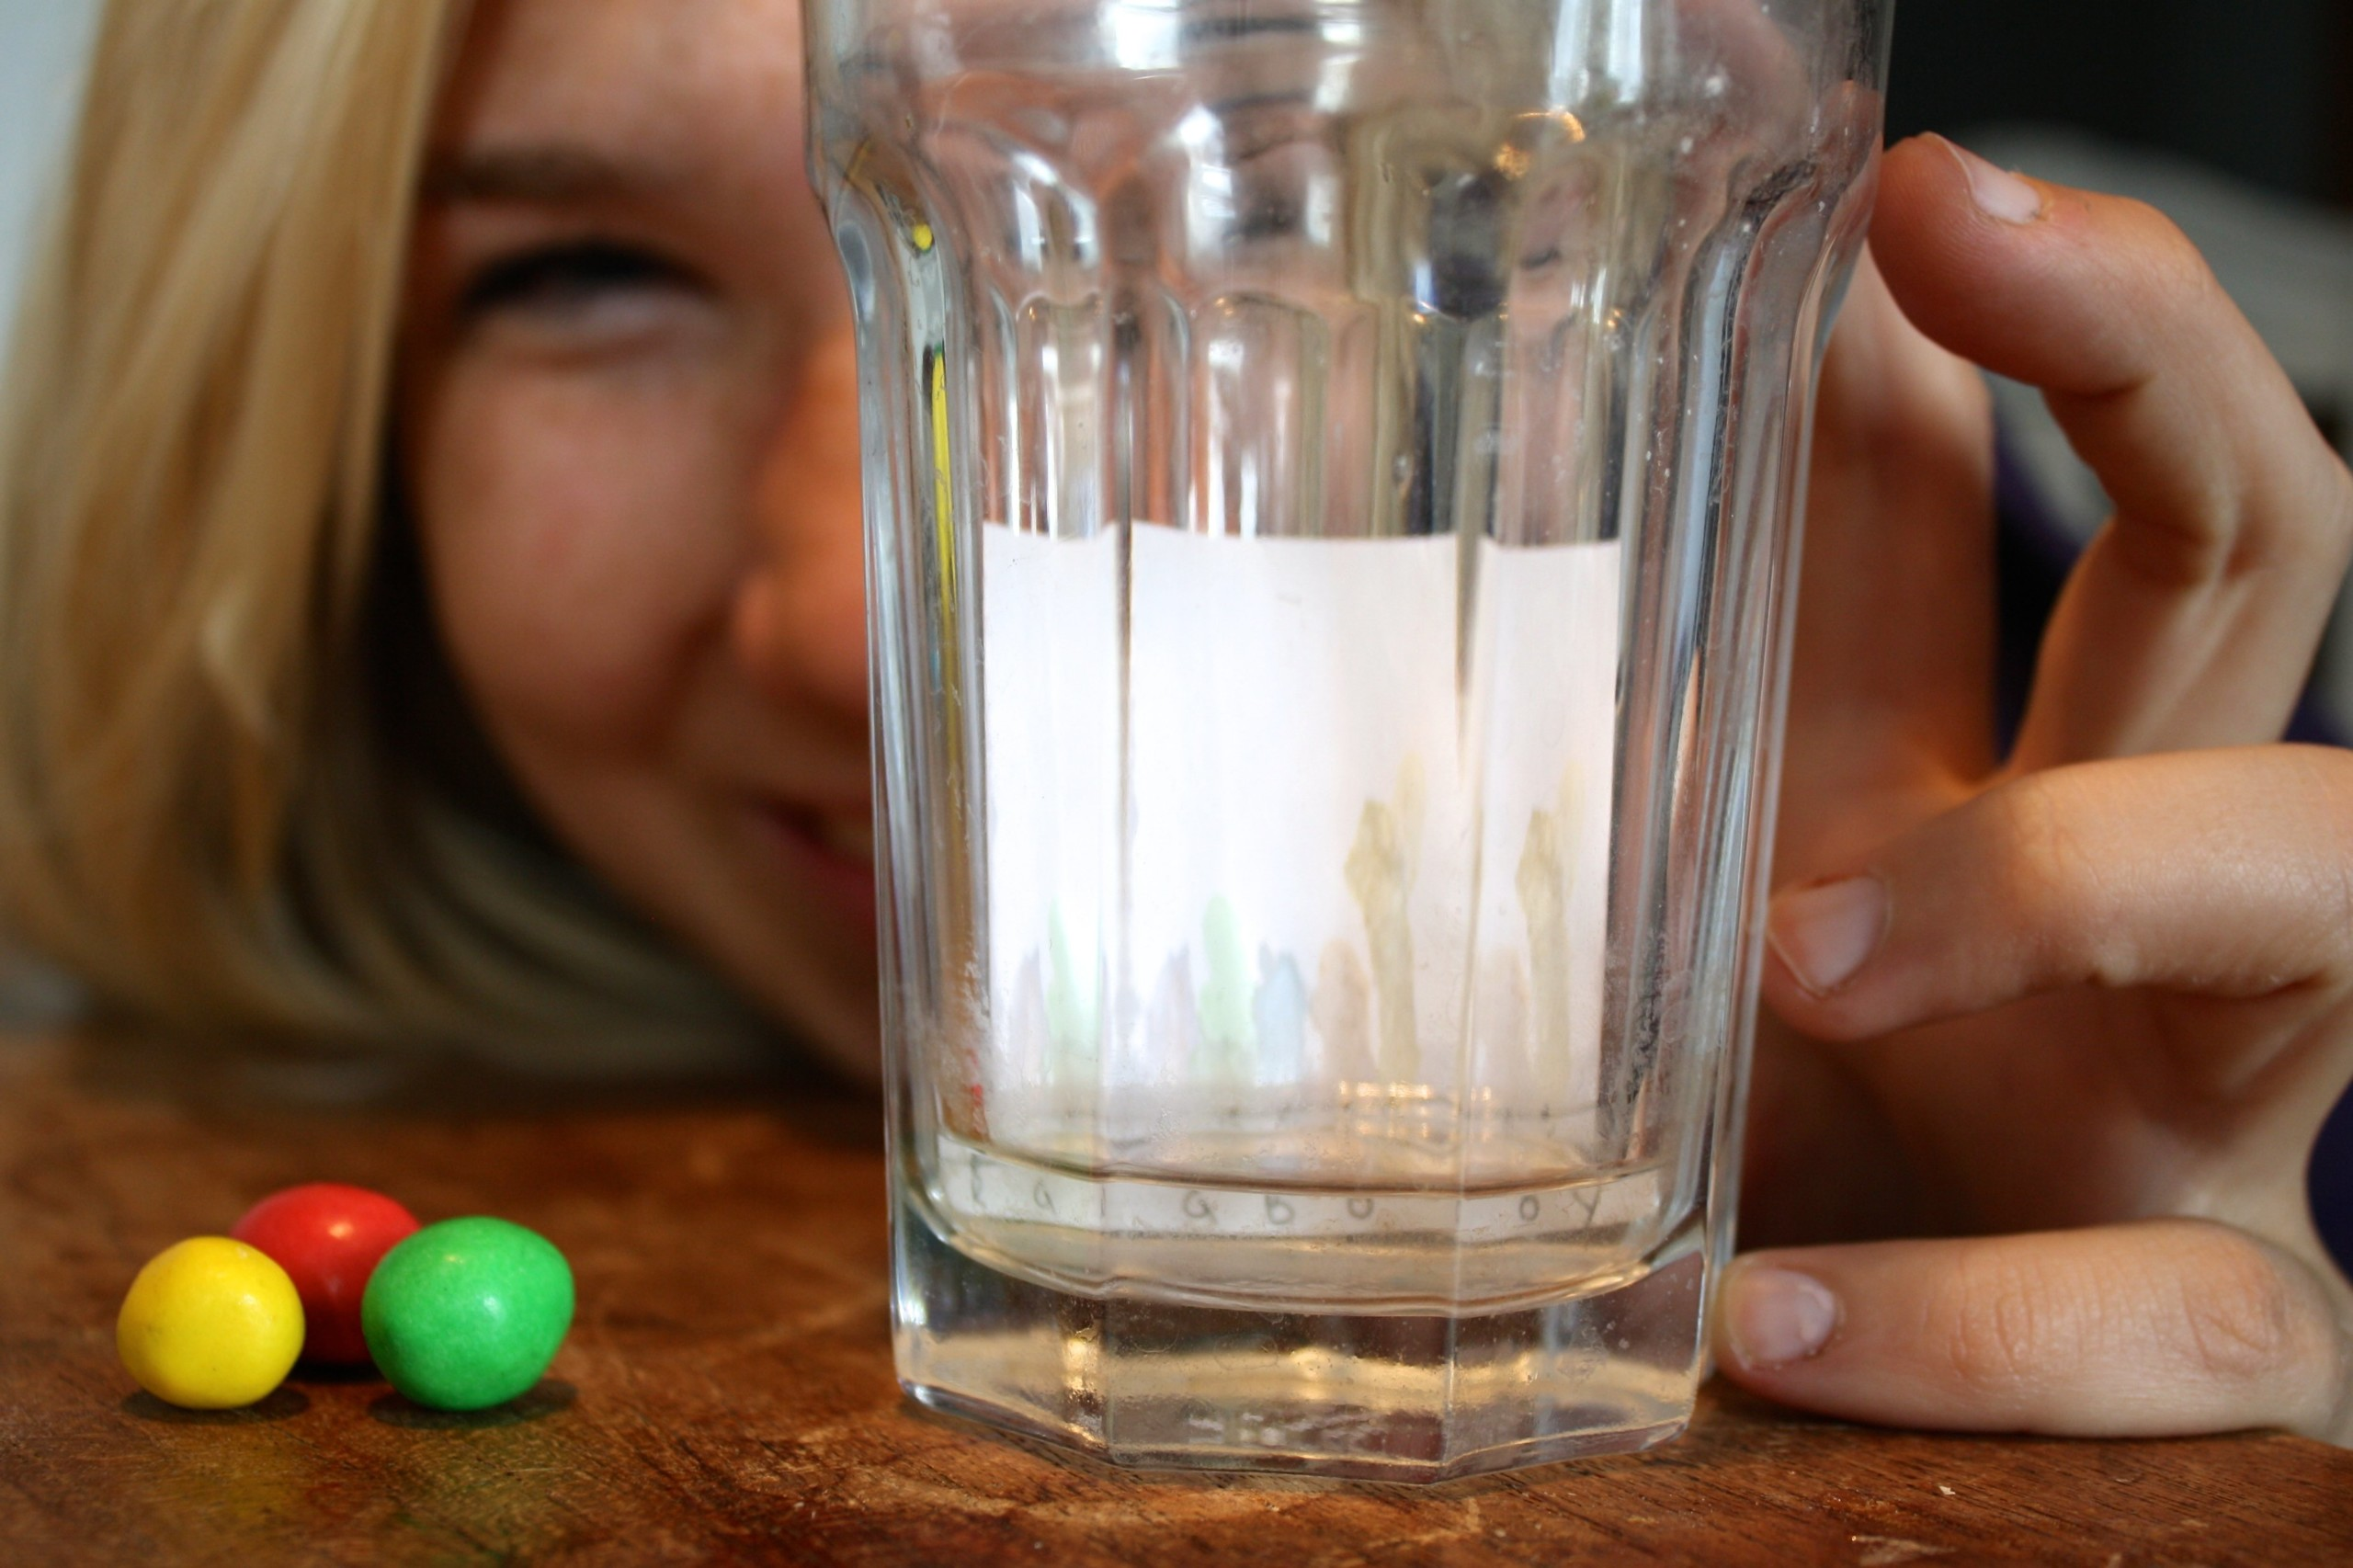 Five do-it-yourself chemistry experiments